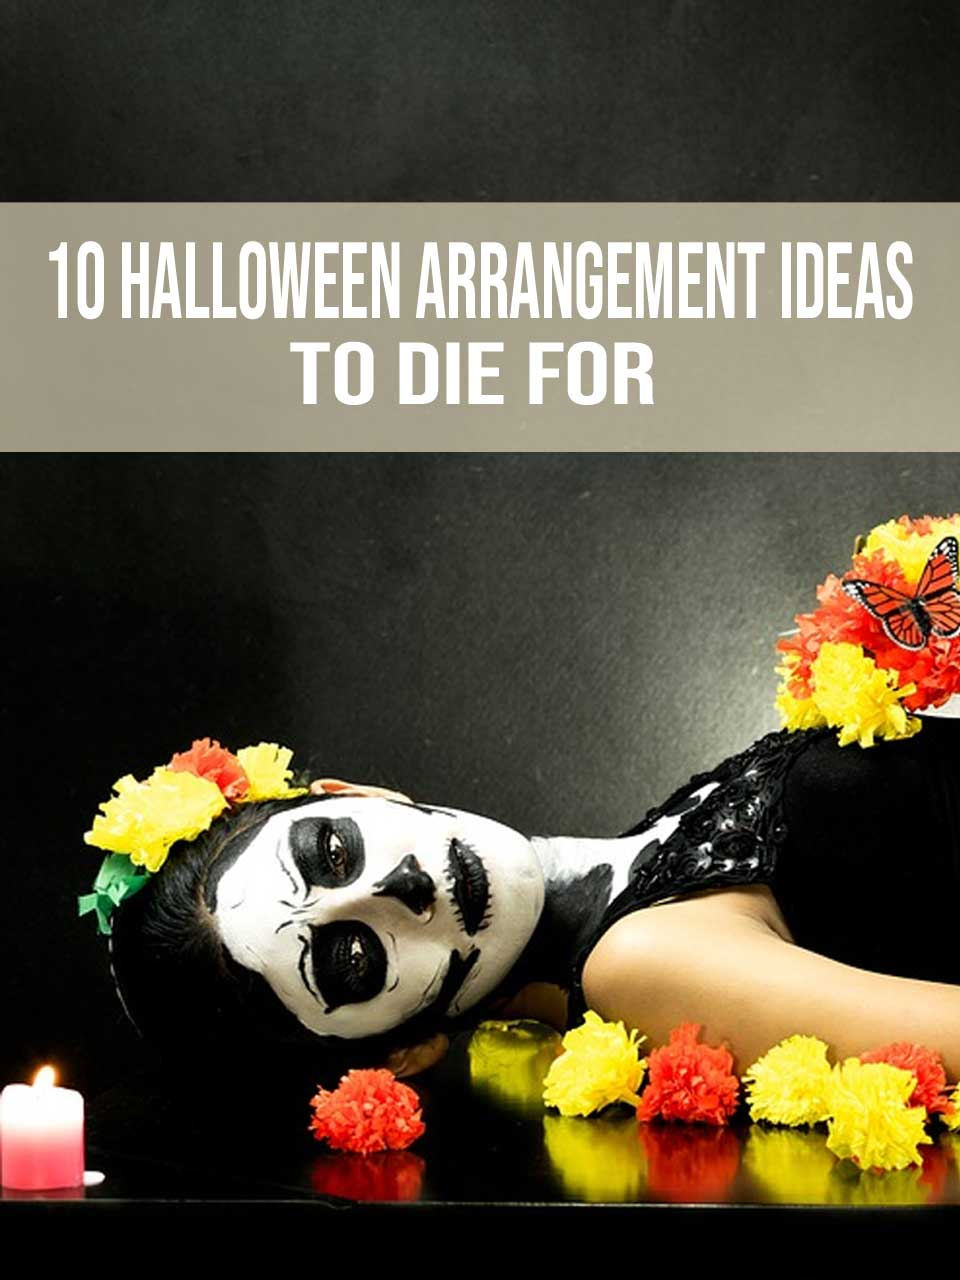 Halloween Arrangement Ideas